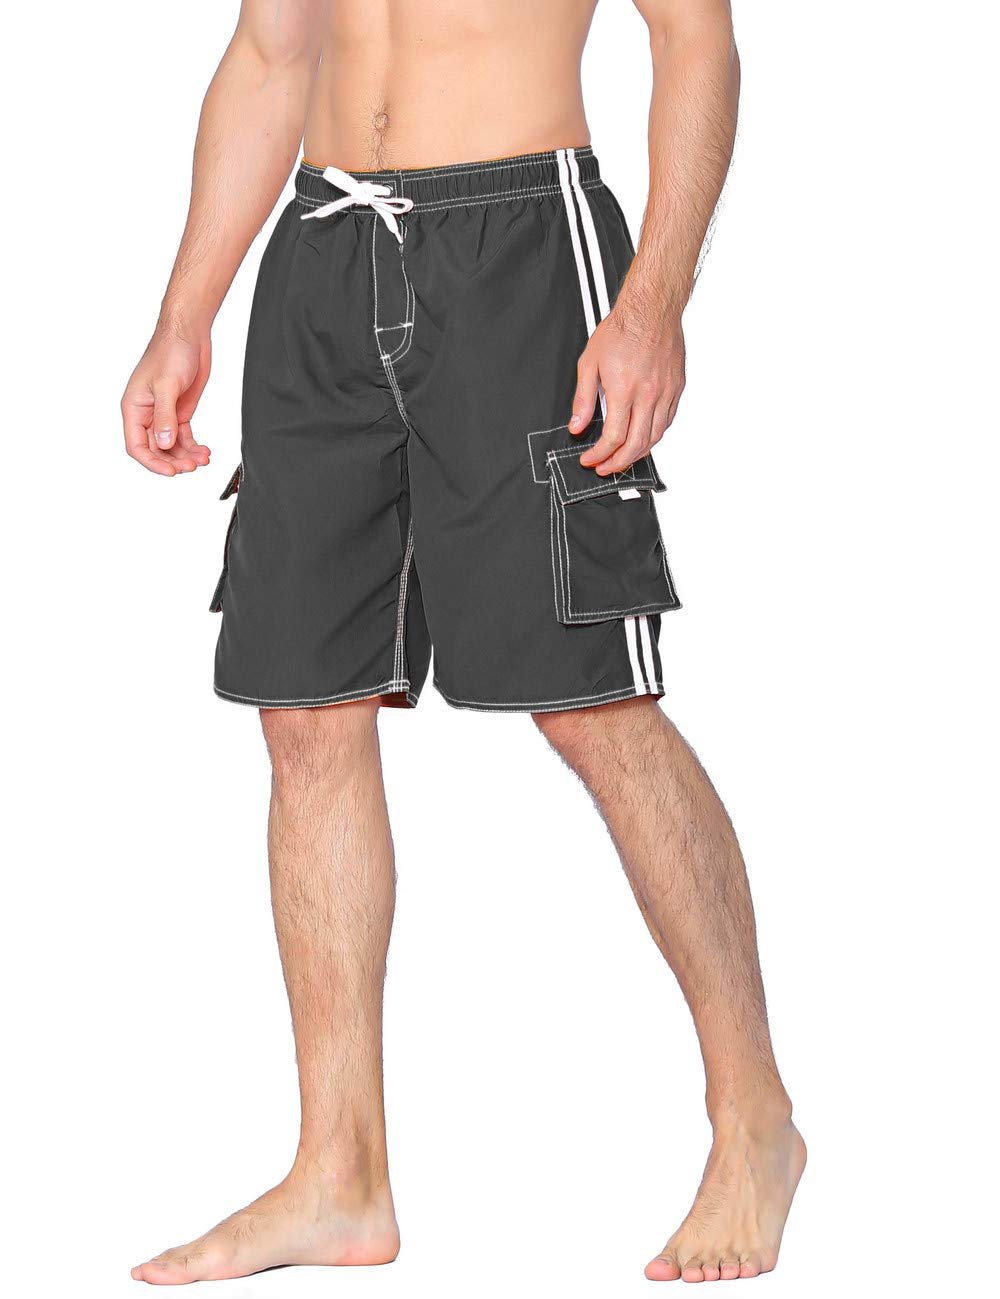 Unitop Men's Classic Quick Dry Beach Shorts with Linning Charcoal Gray 36 by Unitop